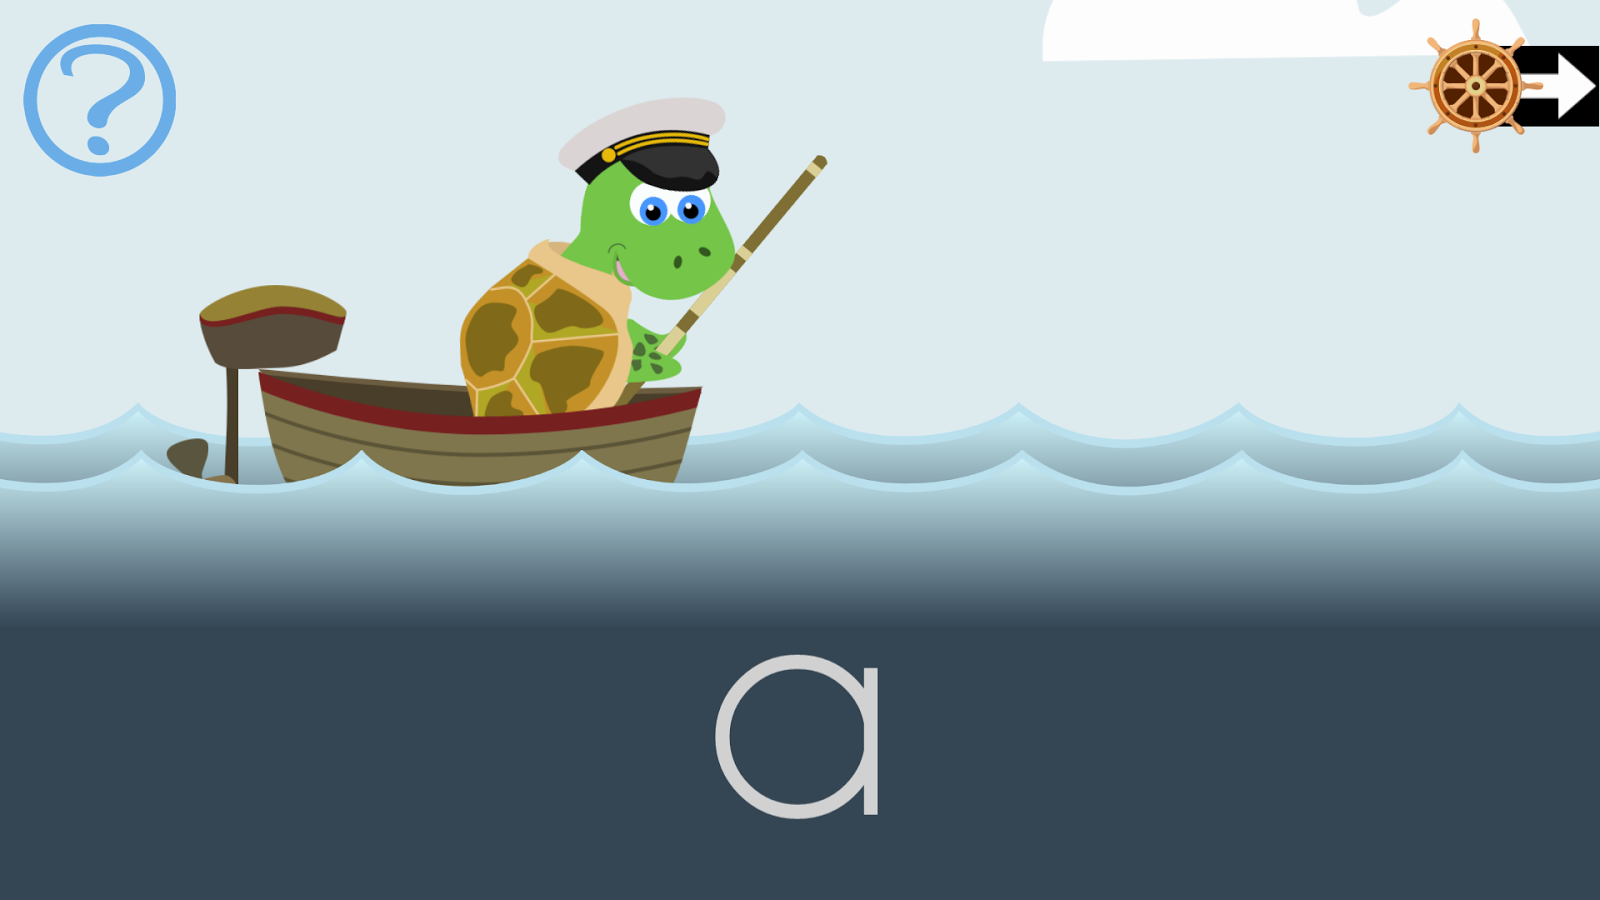 phonics sounds to words for beginning readers android apps on